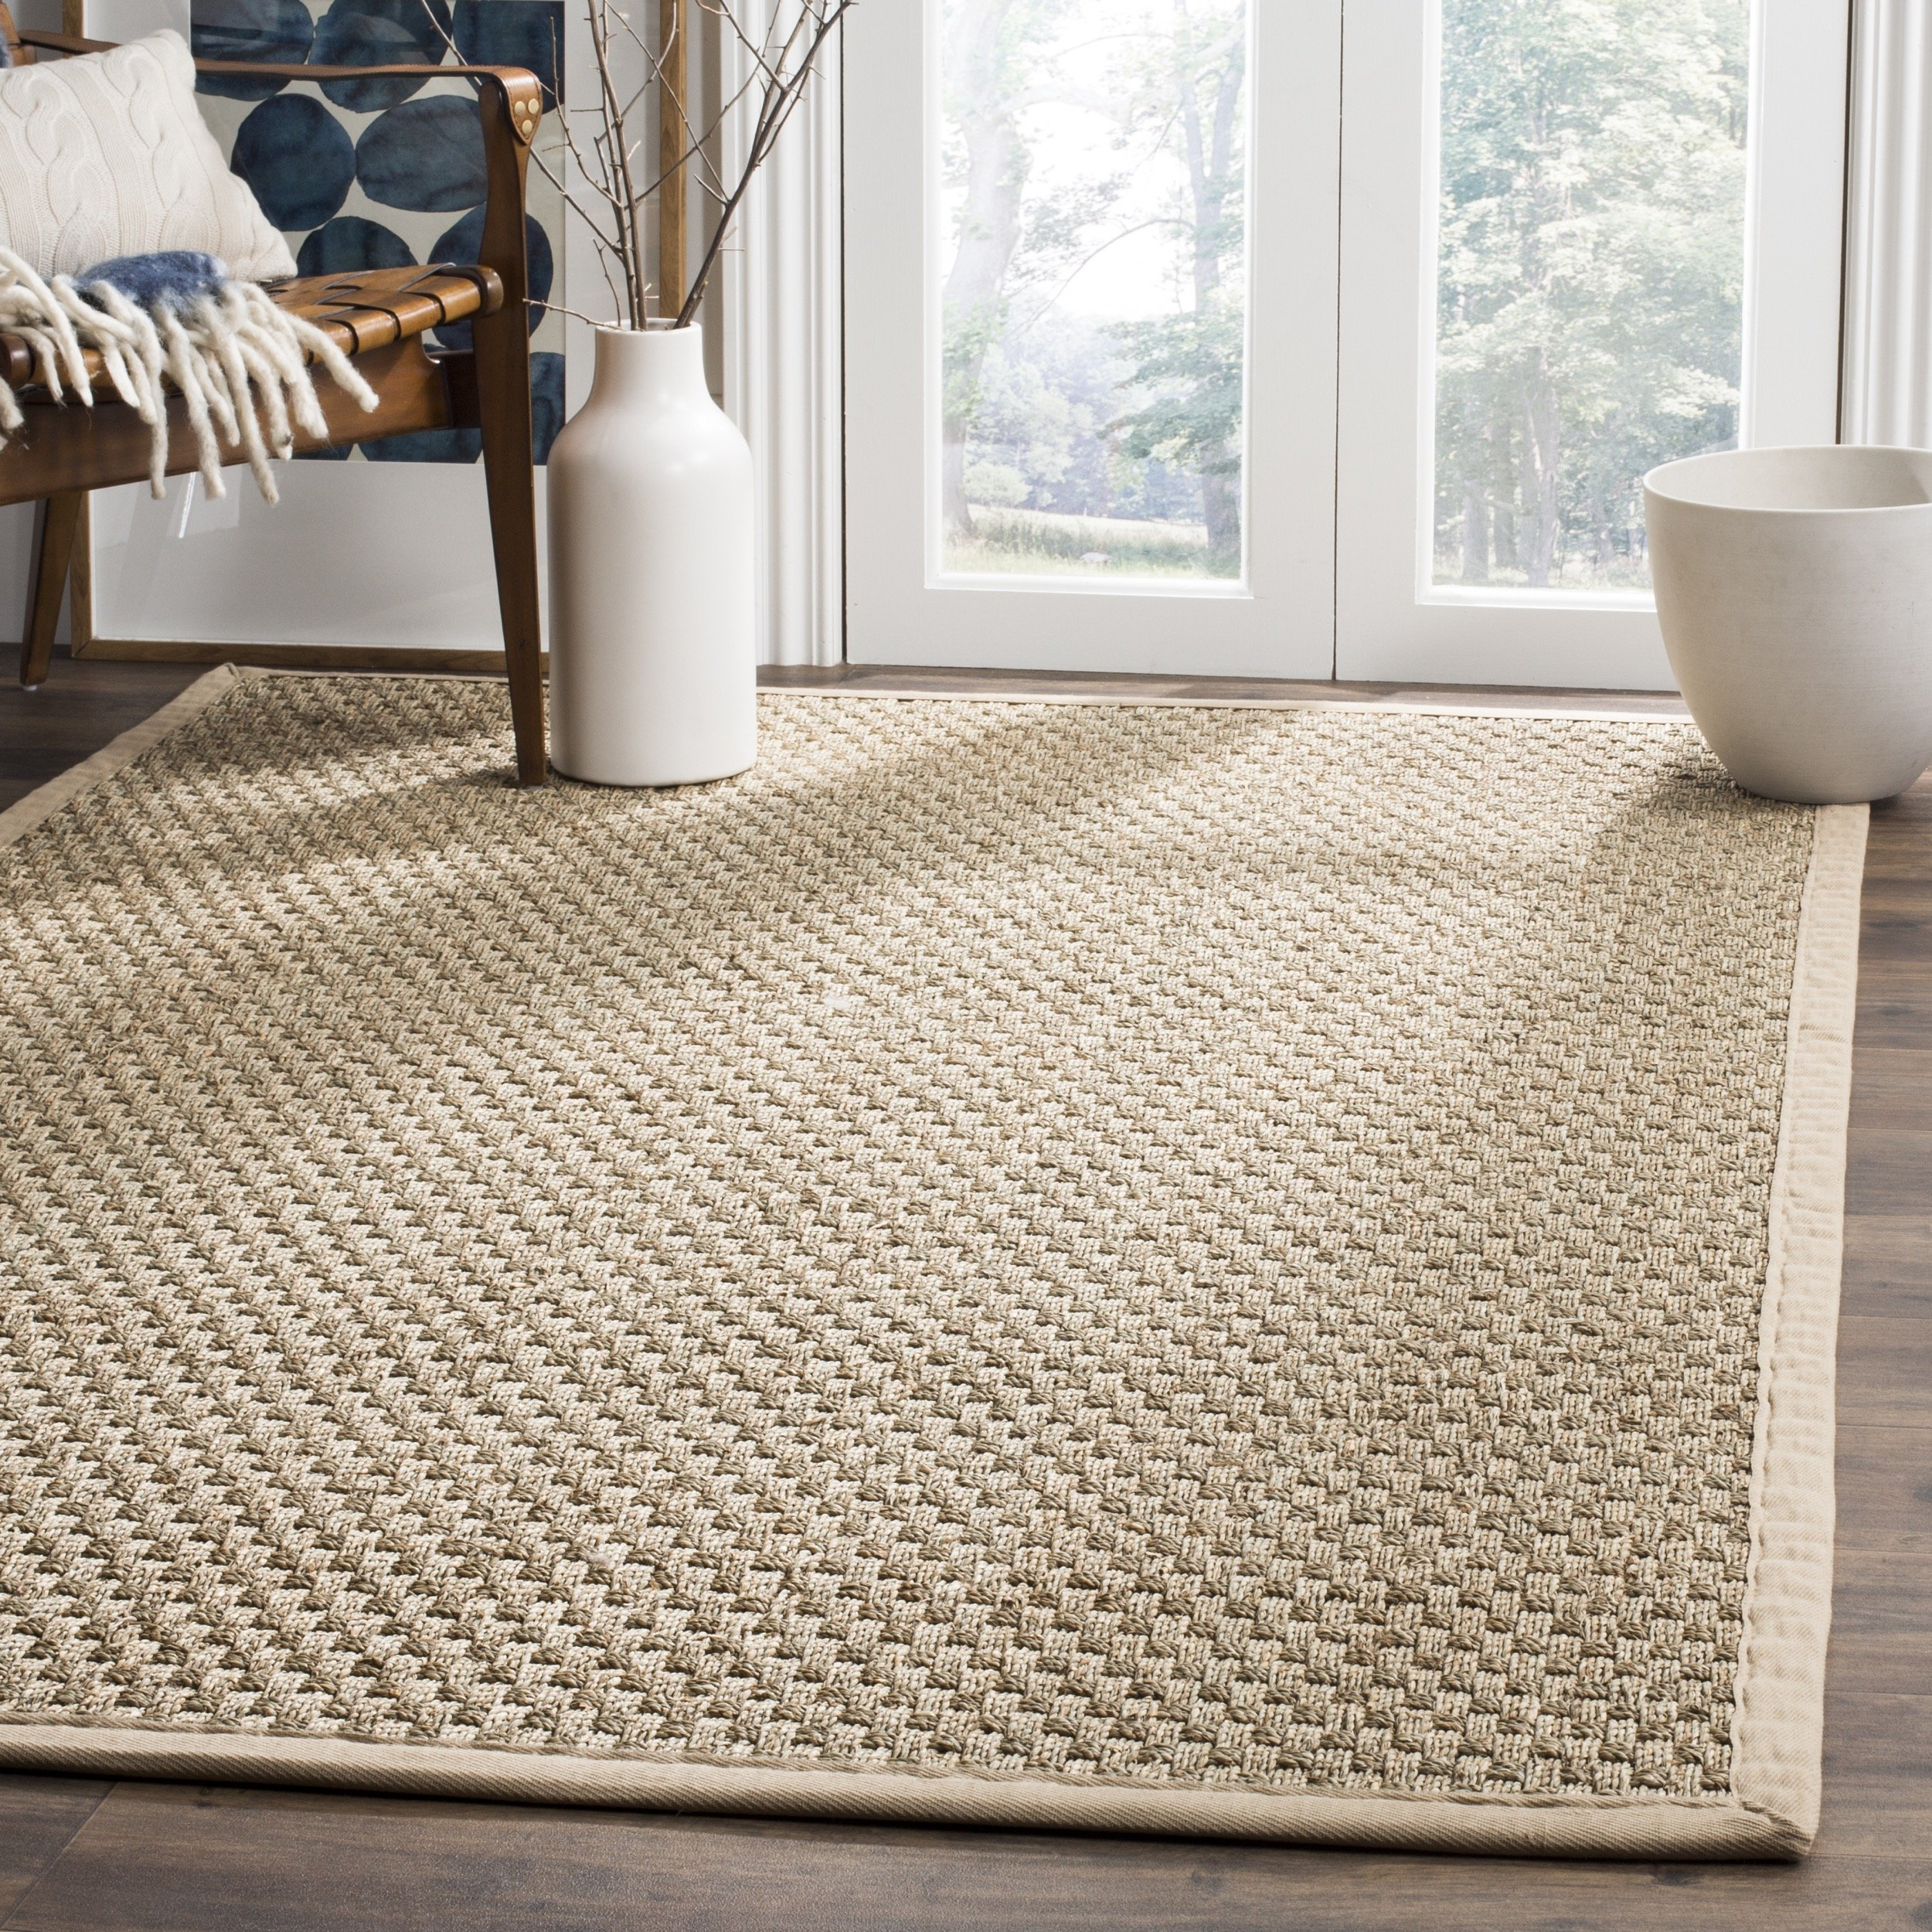 Safavieh Natural Fiber Collection NF114A Basketweave Natural and  Beige Seagrass Area Rug (6' x 9') by Safavieh